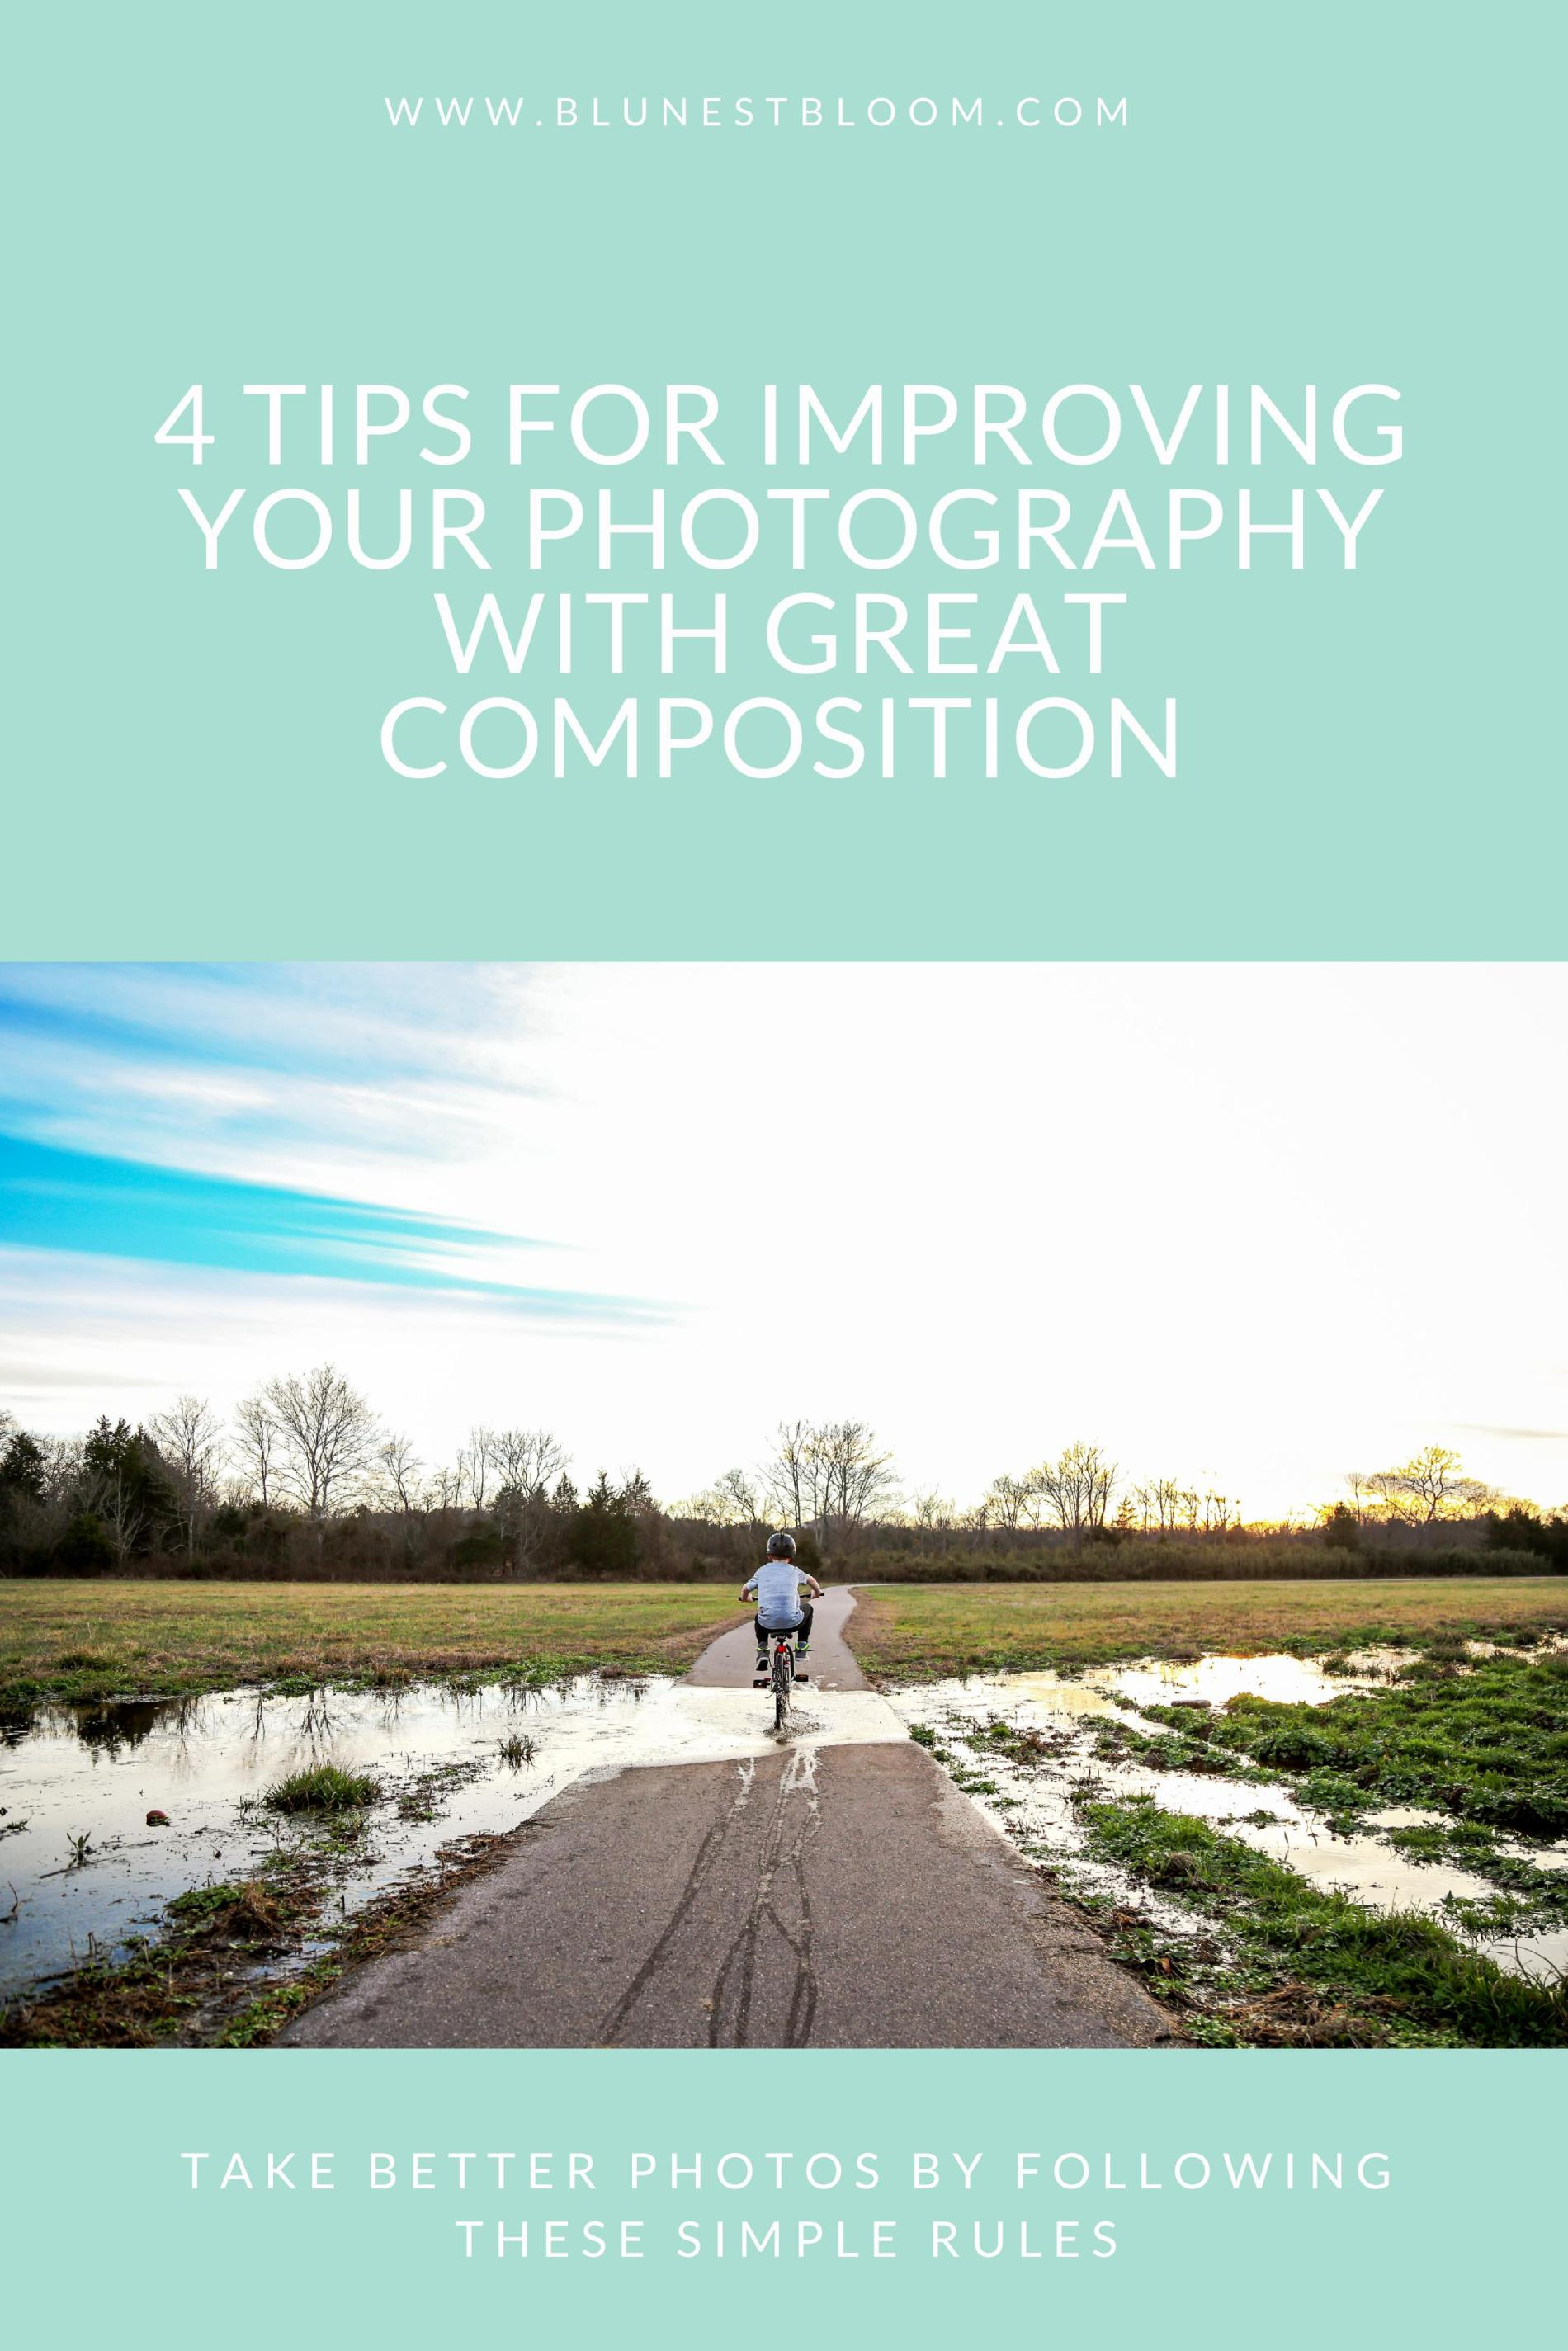 4 tips for improving composition in photos